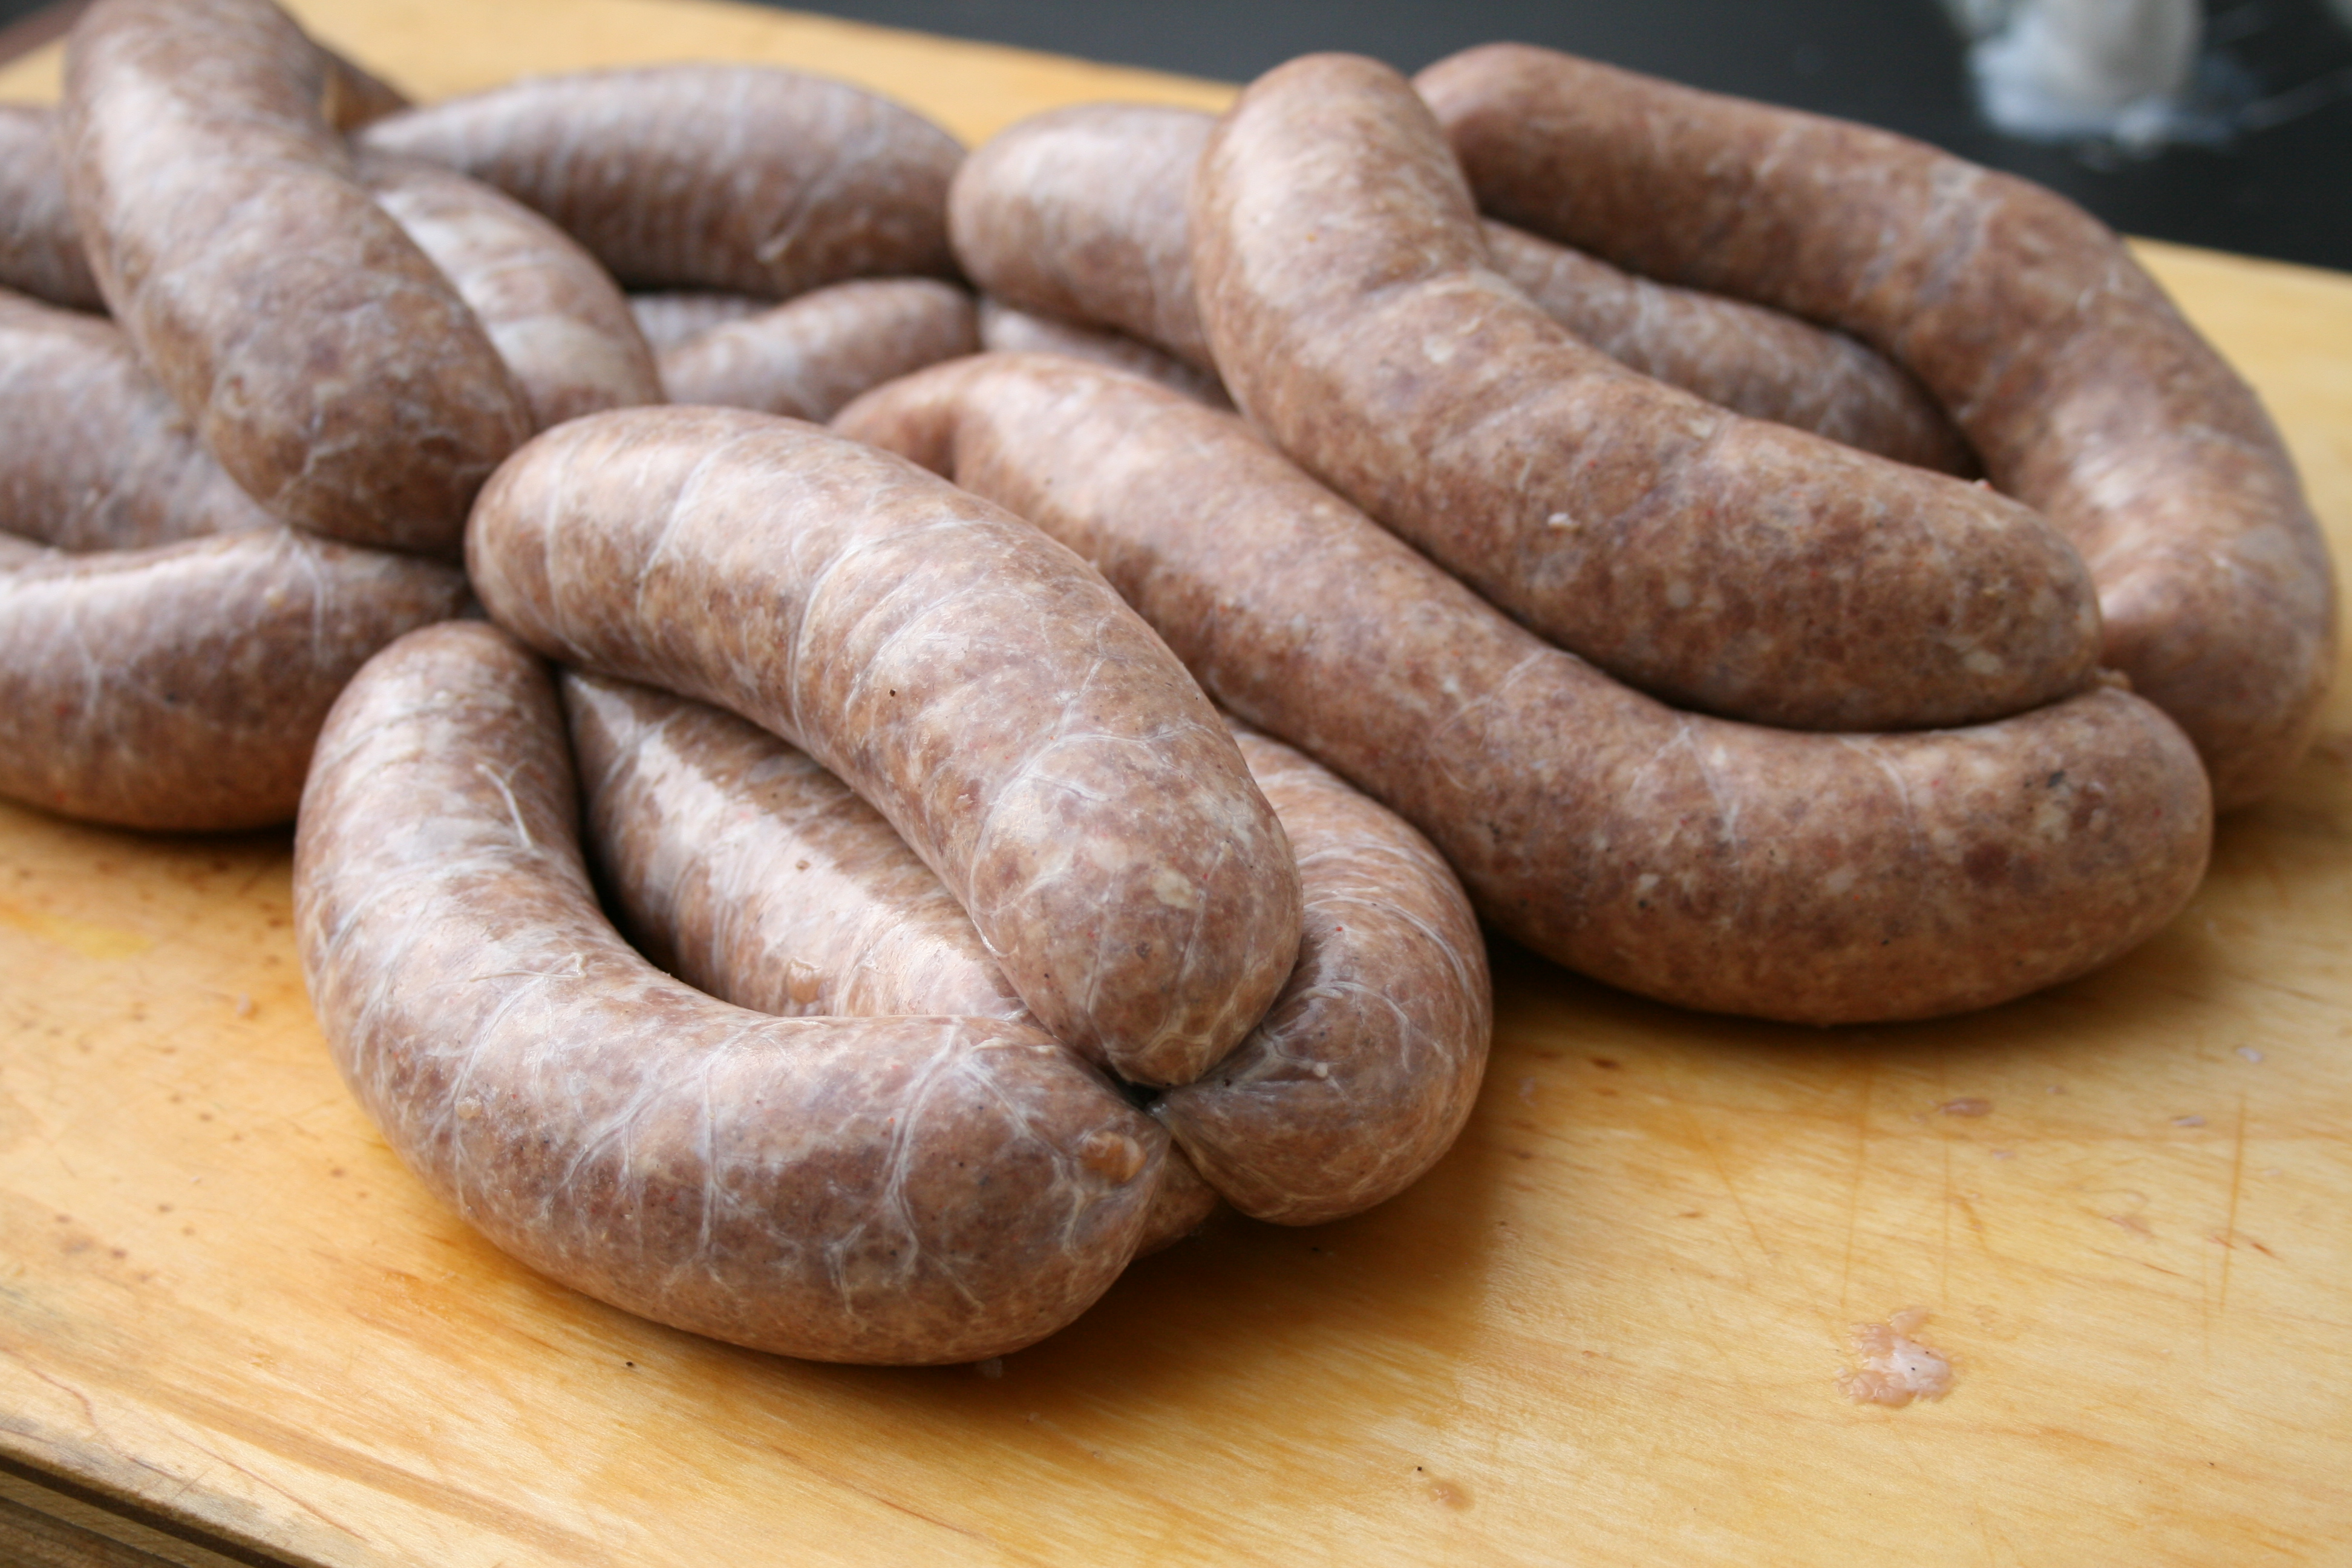 How to cook homemade sausage